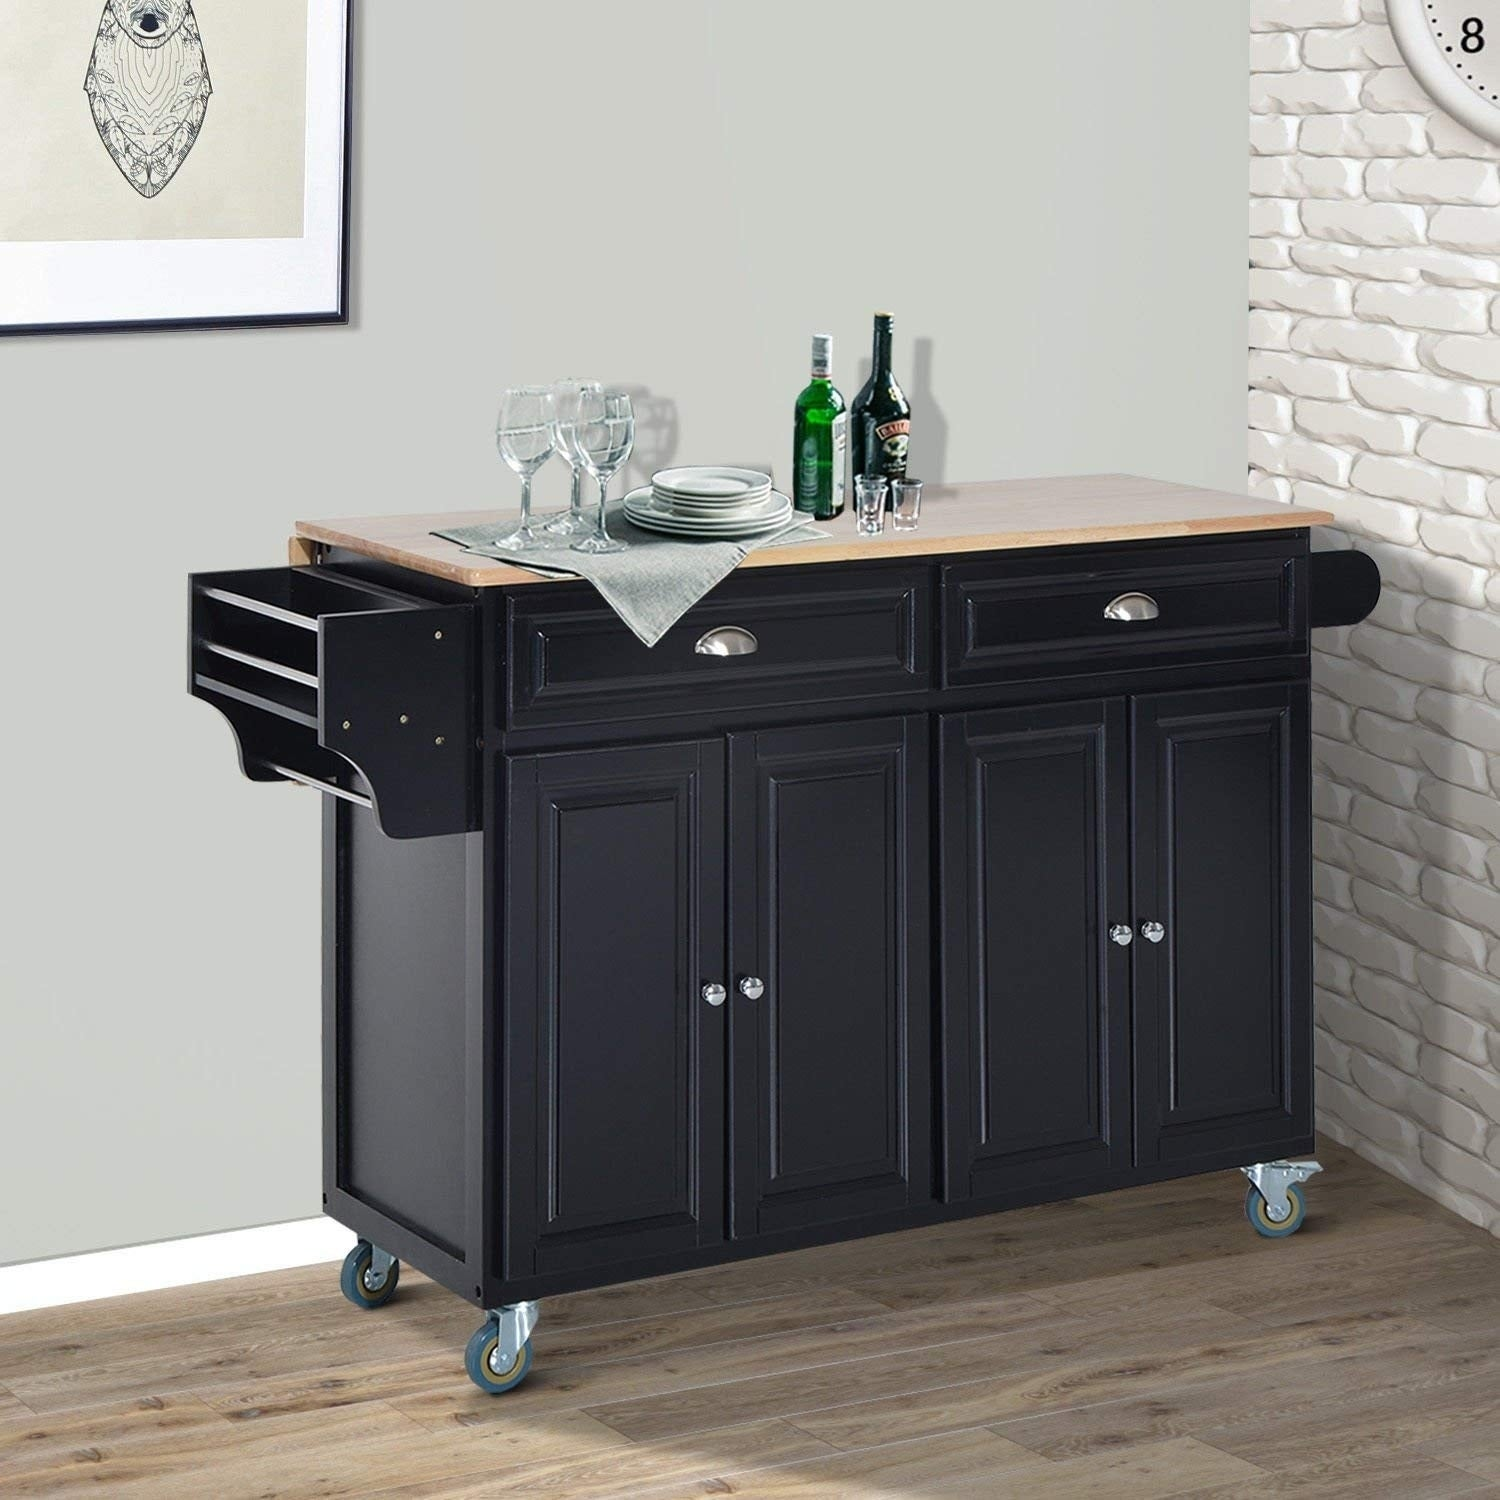 HomCom Wood Top Drop Leaf Multi Storage Cabinet Rolling Kitchen Island  Table Cart With